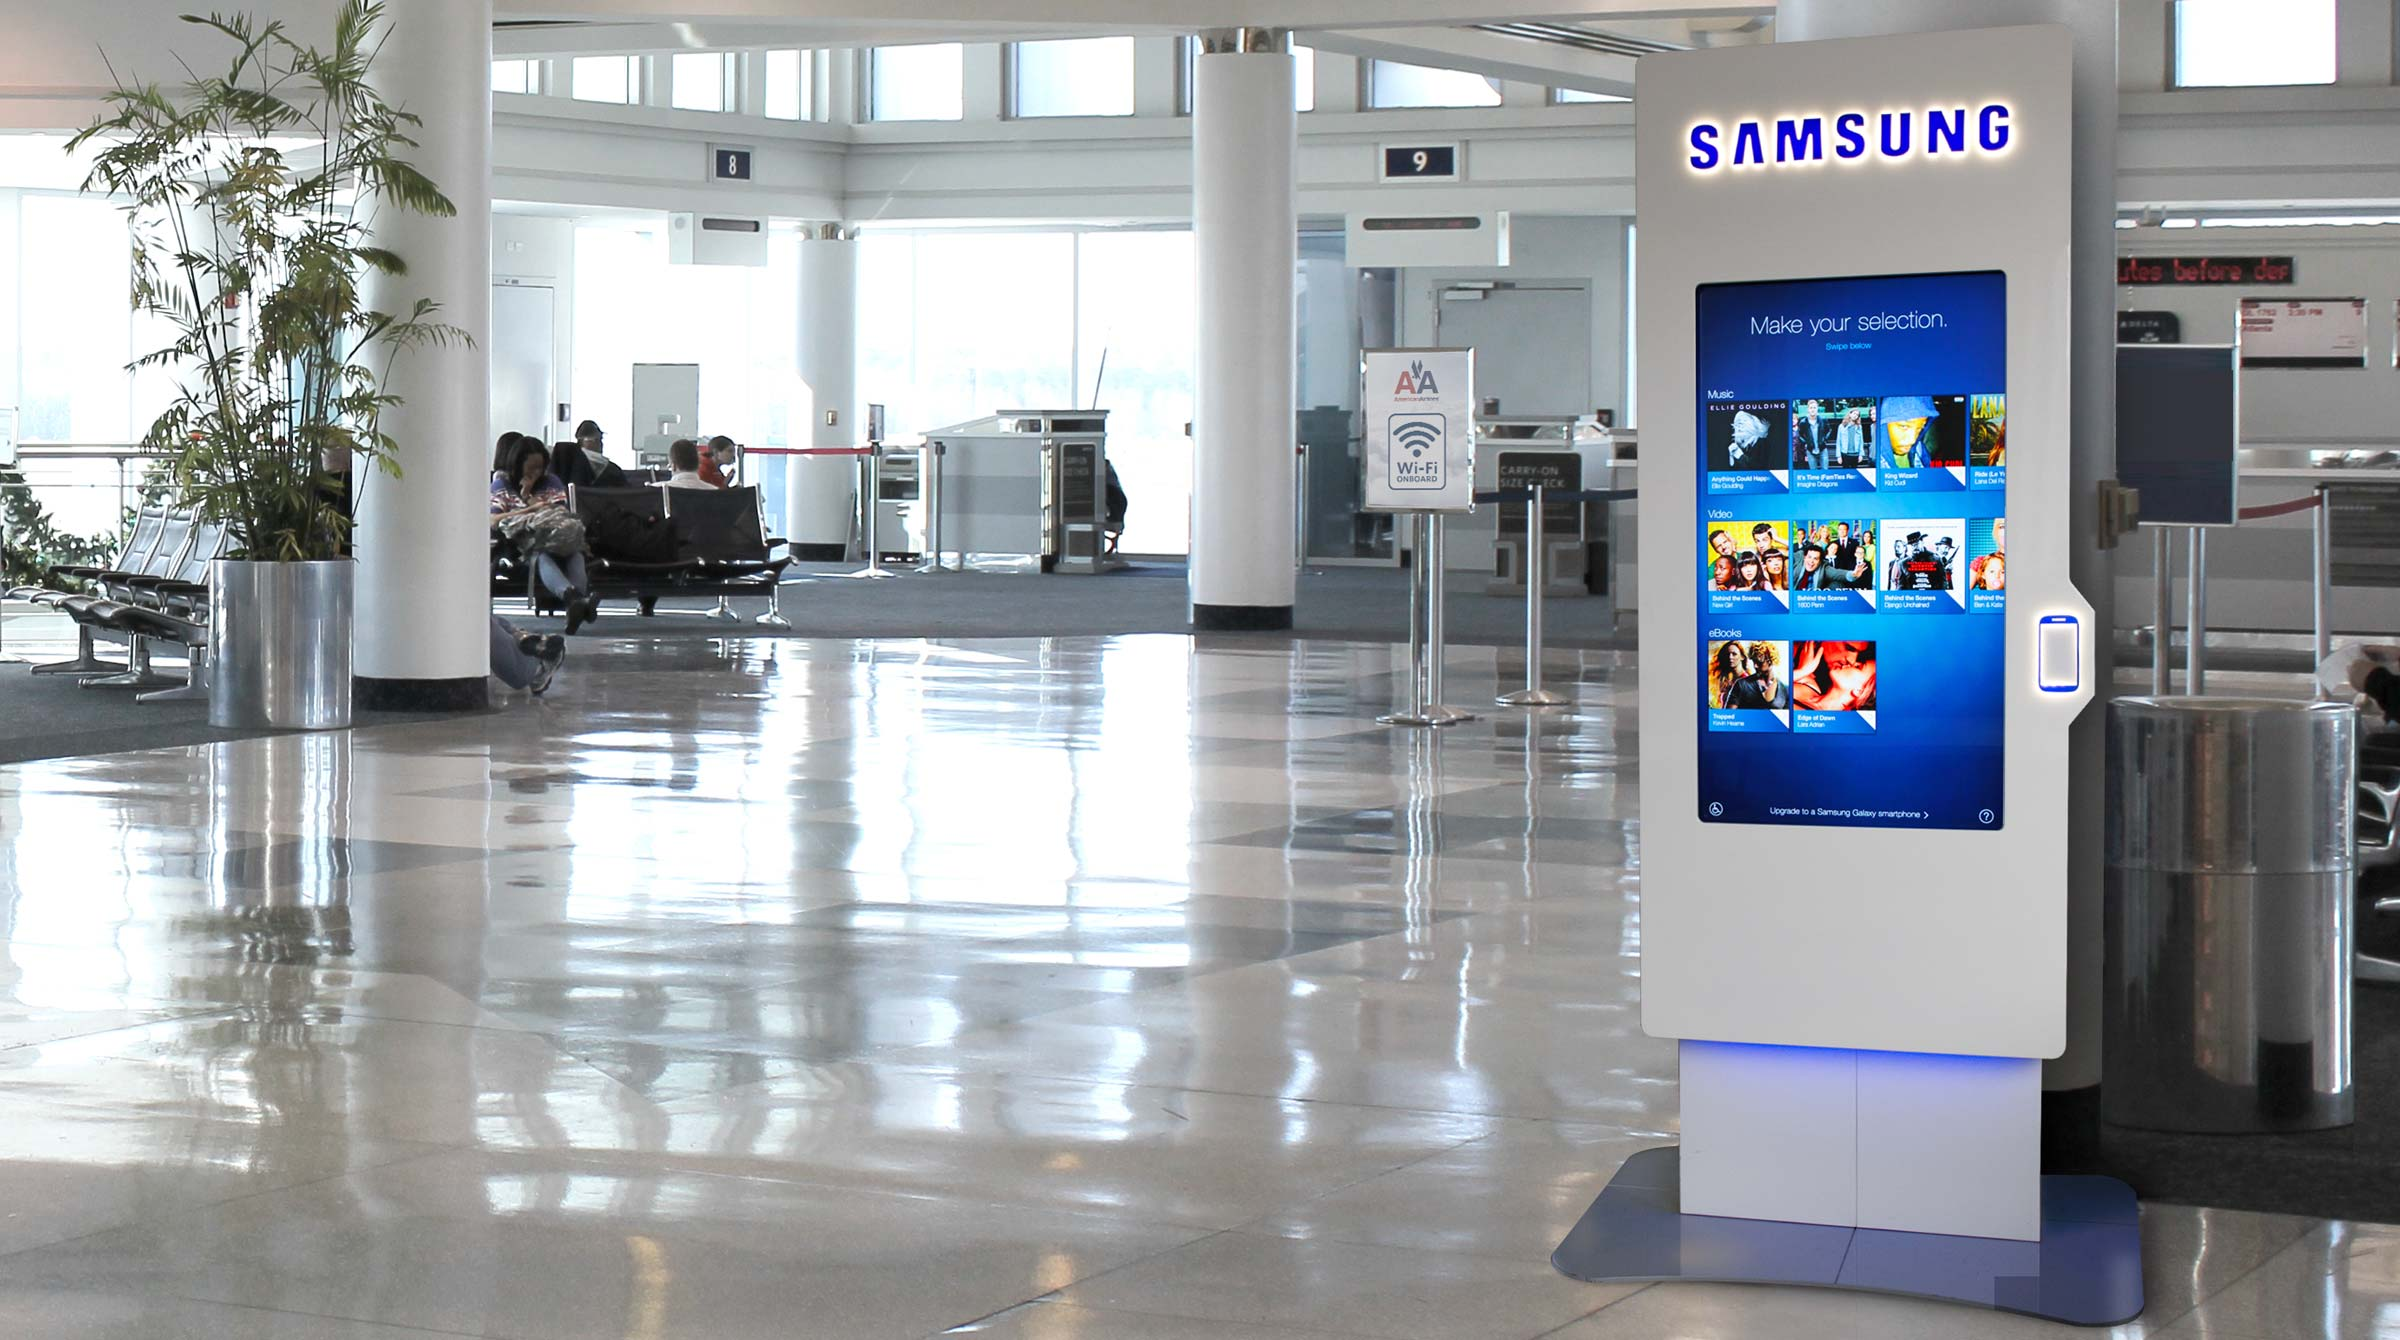 Samsung NFC Kiosk in airport concourse